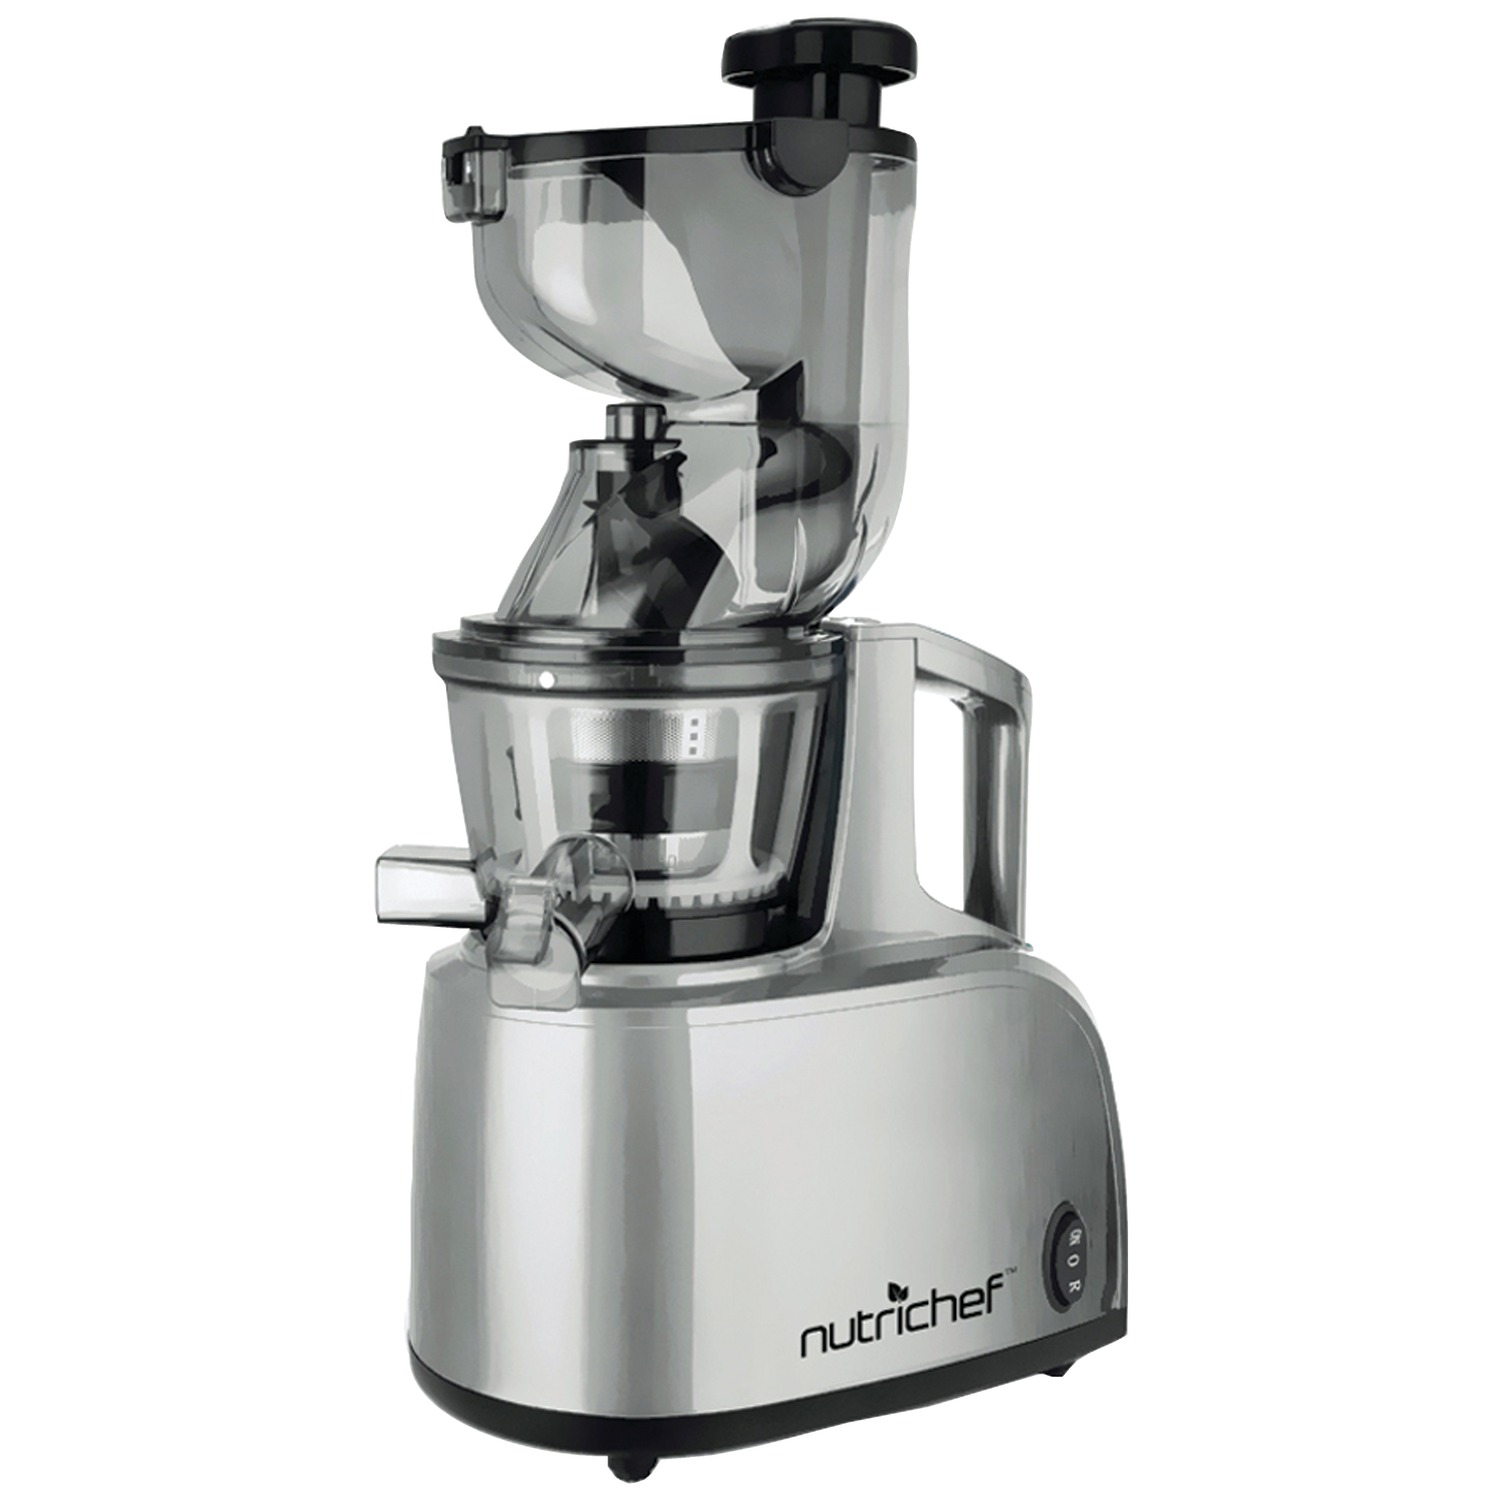 Best Masticating Juicer Deals : NUTRICHEF PKSJ40 Countertop Masticating Slow Juicer & Drink Maker